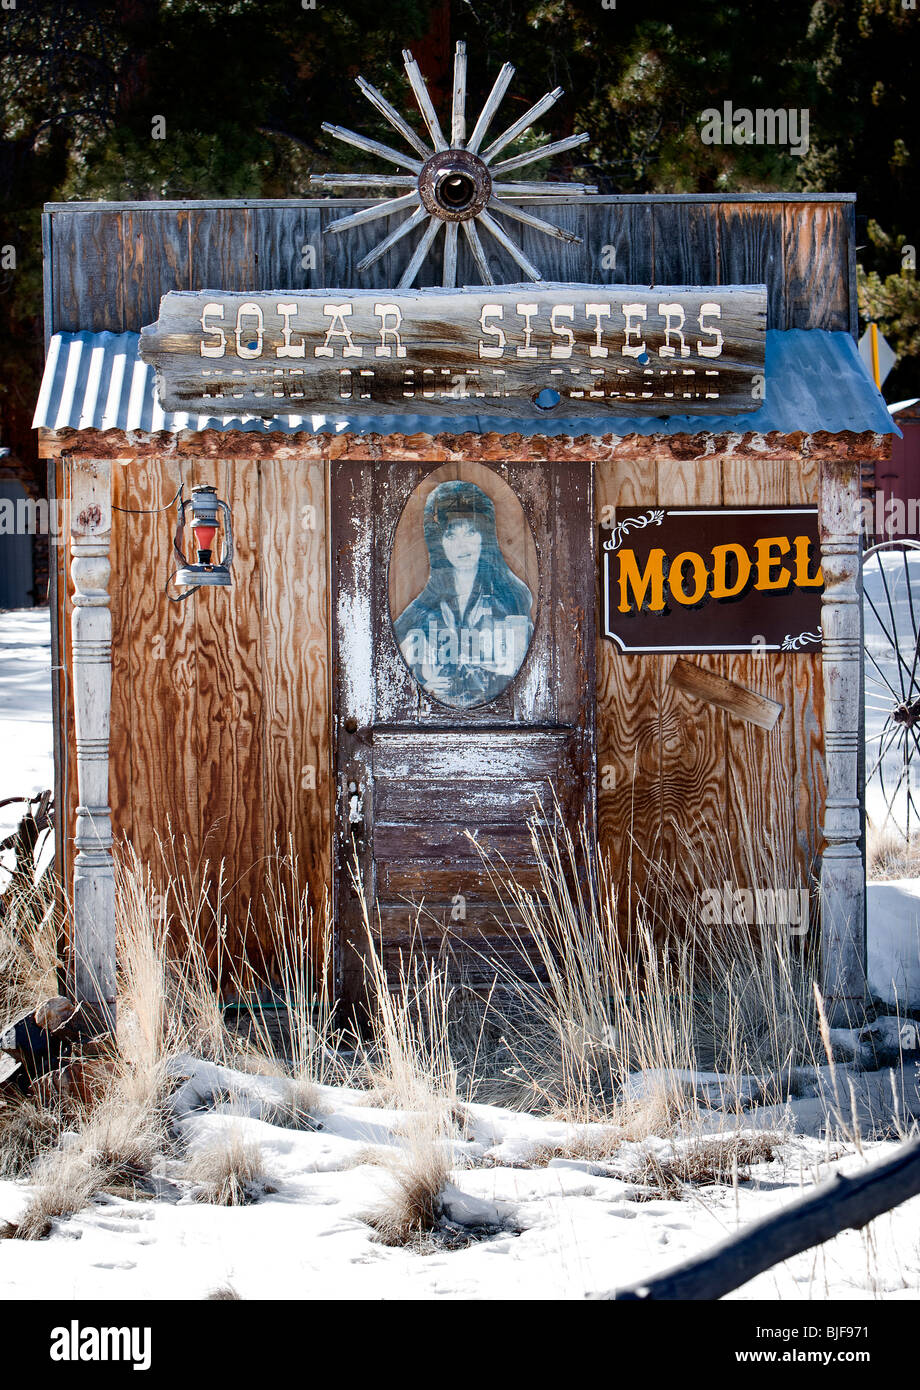 A 'Solar Sisters' booth in Guffey, Colorado. - Stock Image